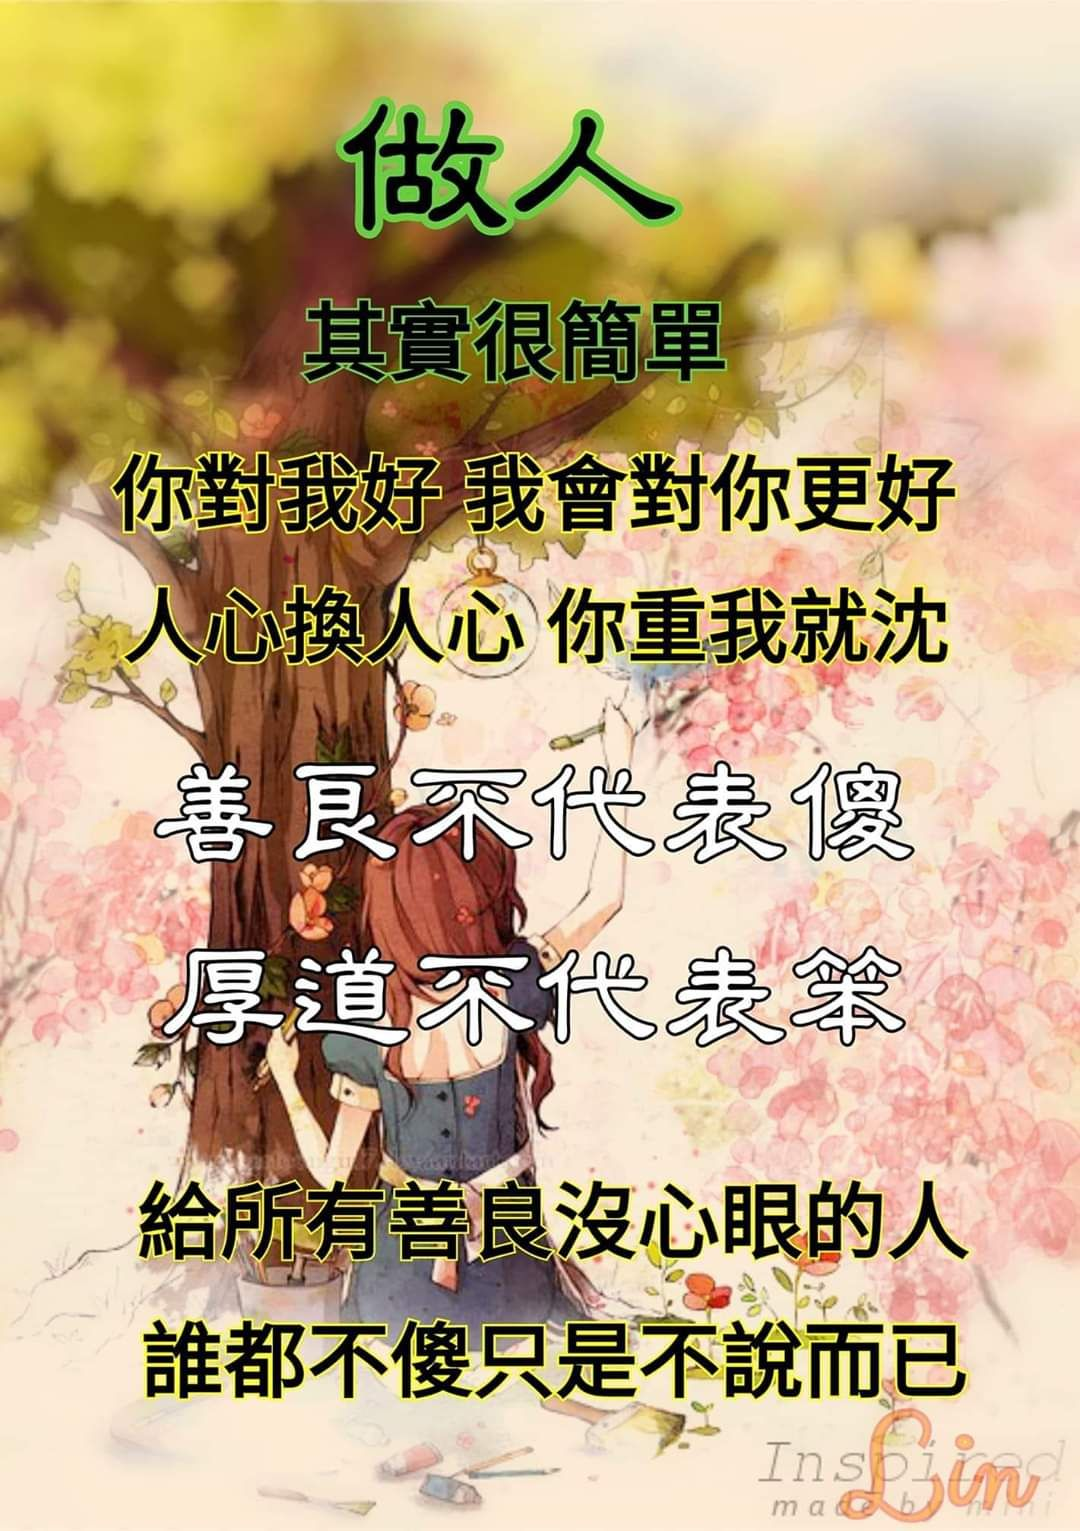 Pin by 麗秋 lin on 語錄 in 2020